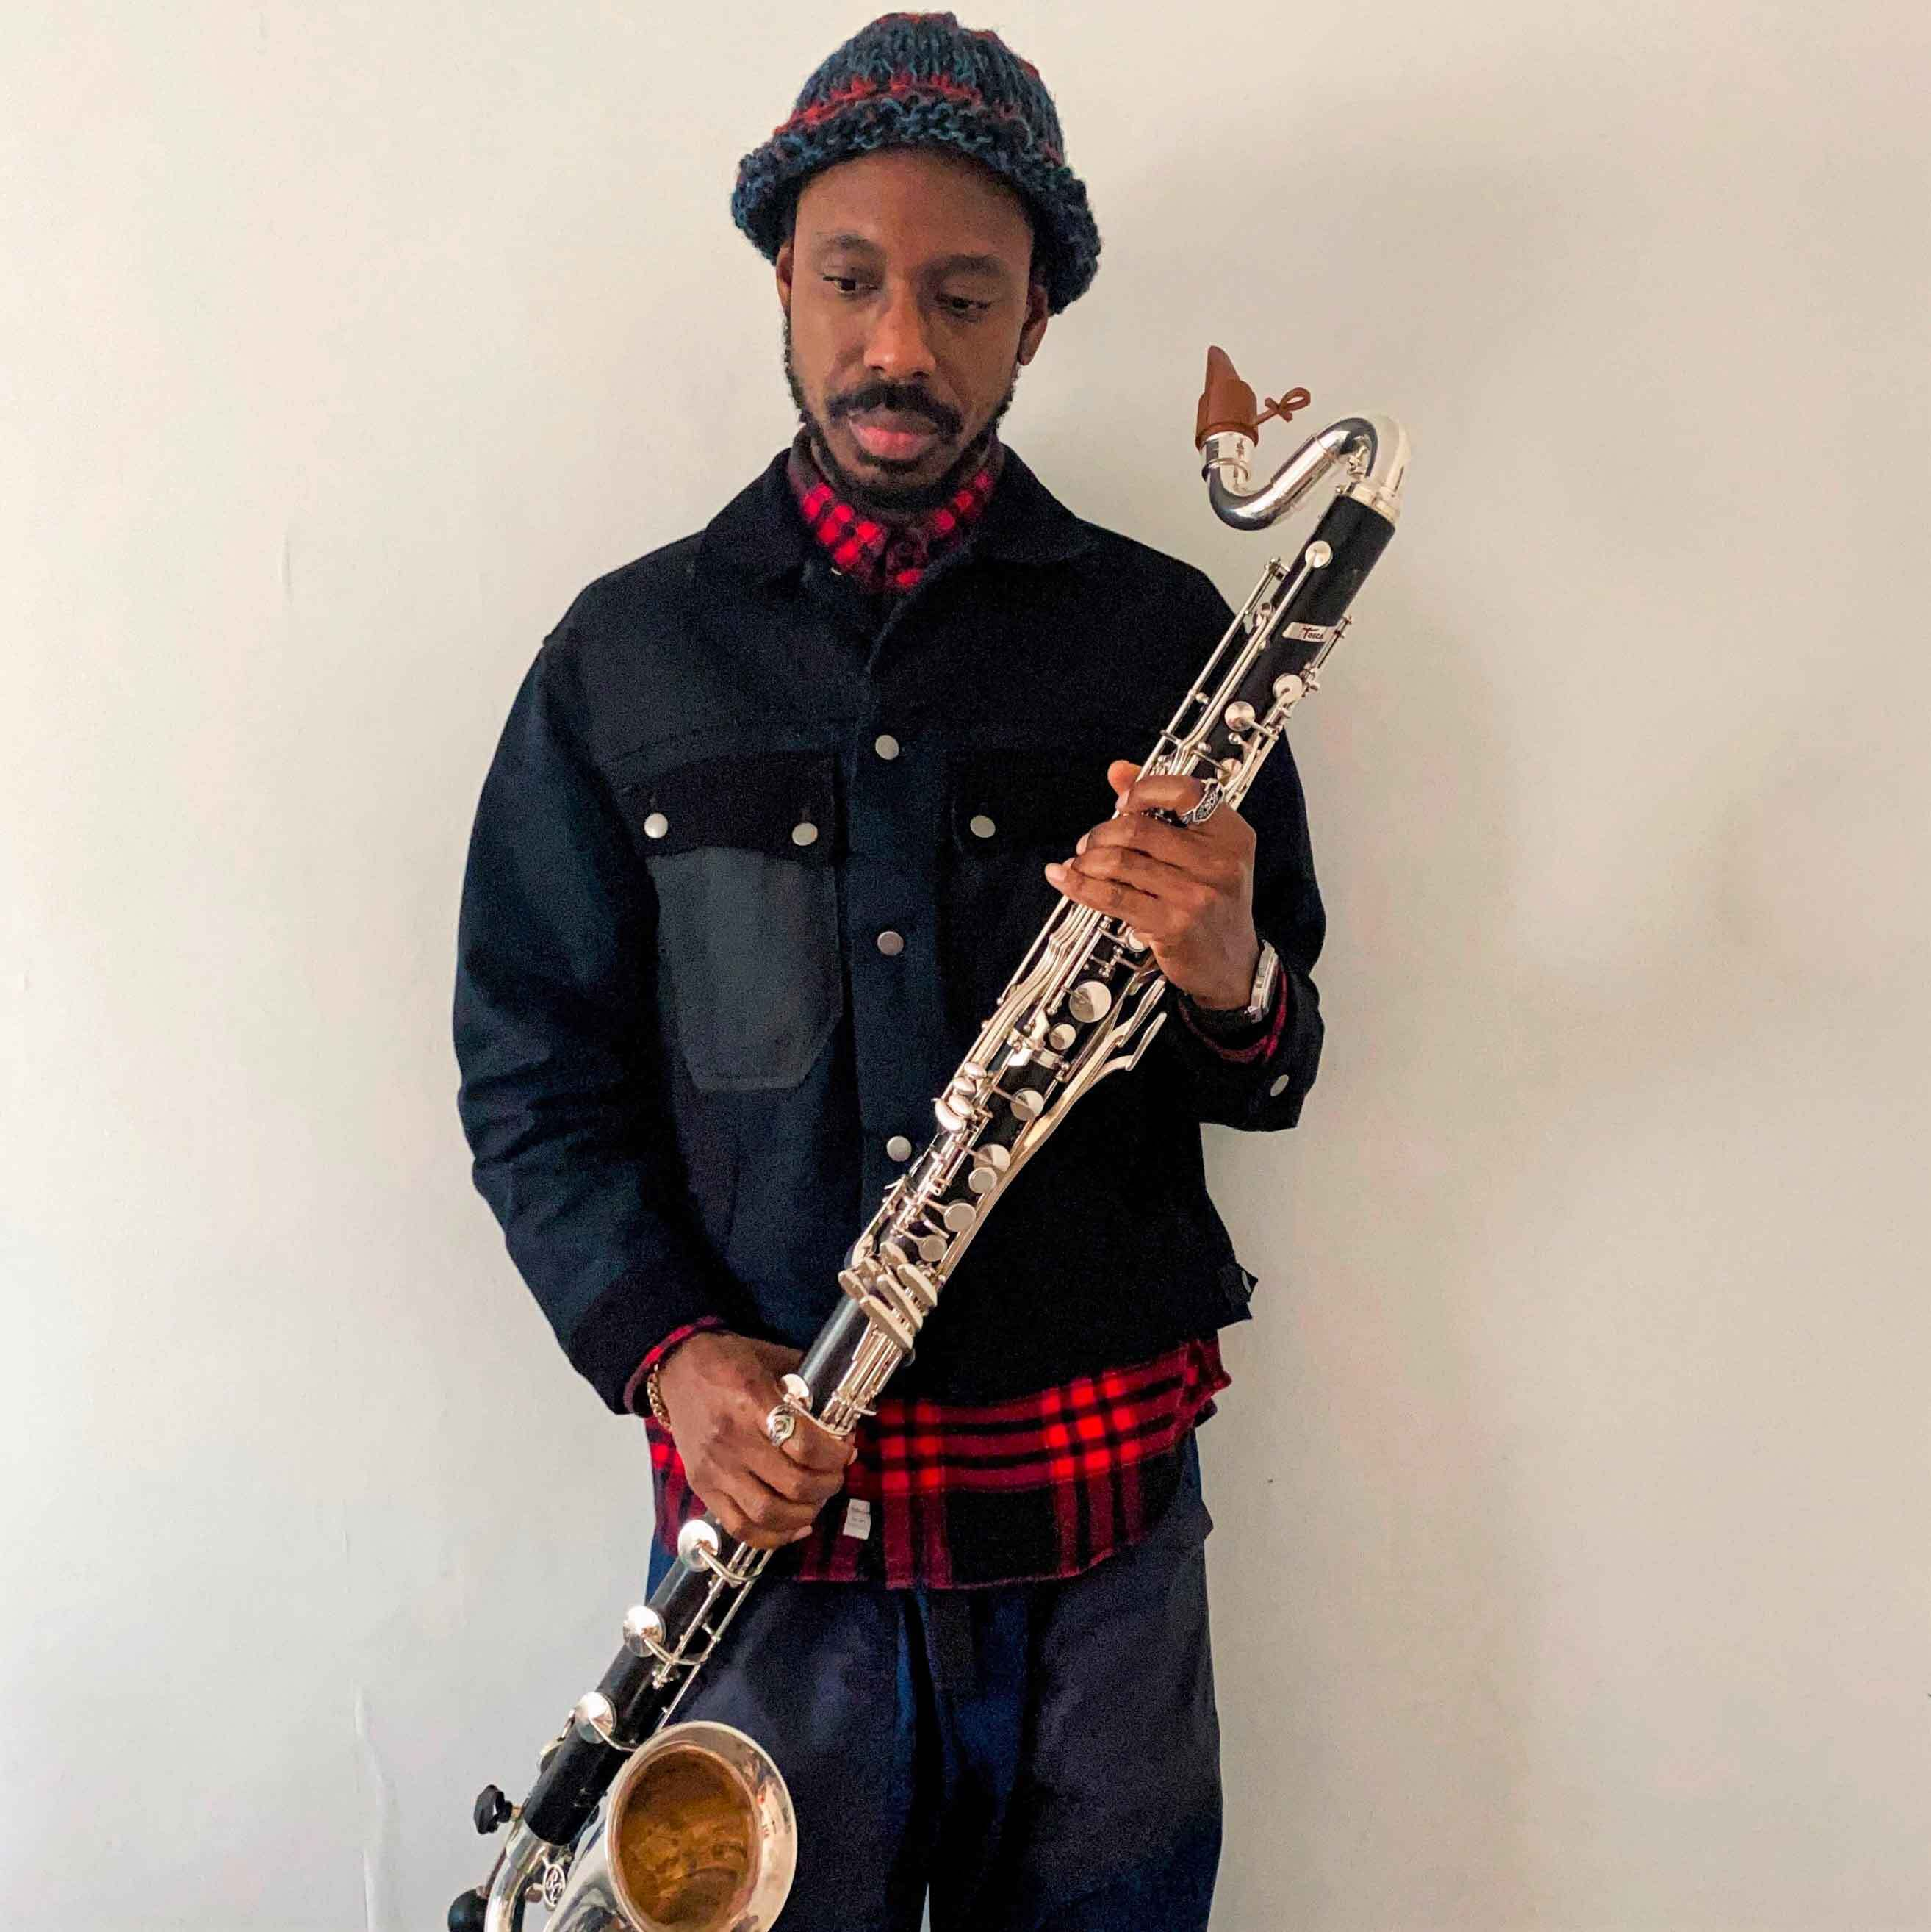 Shabaka Hutchings plays a Syos mouthpiece for bass clarinet